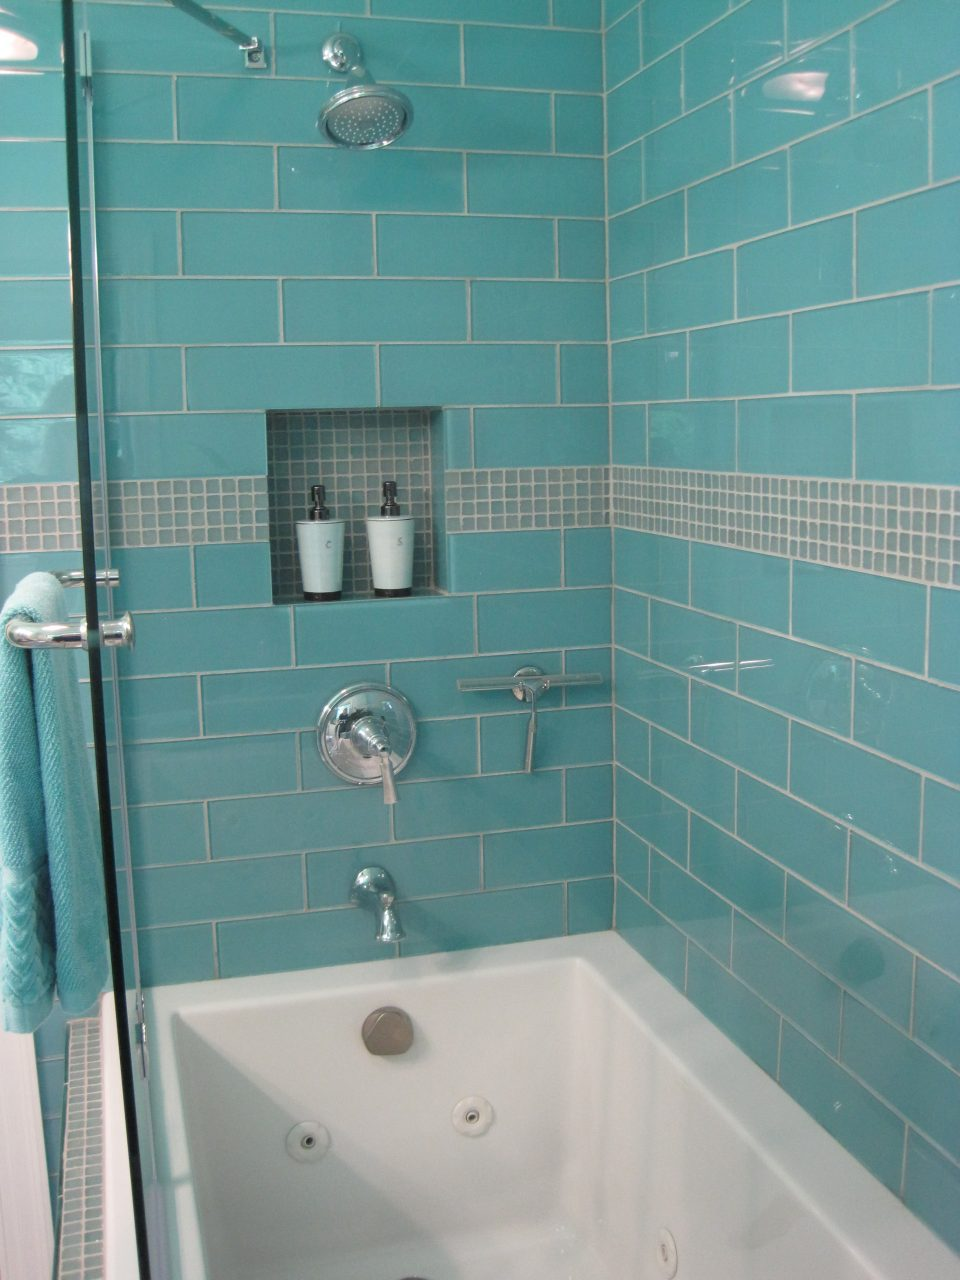 Sky Blue Glass Subway Tile Subway Tile Outlet Ba Shower Thank You